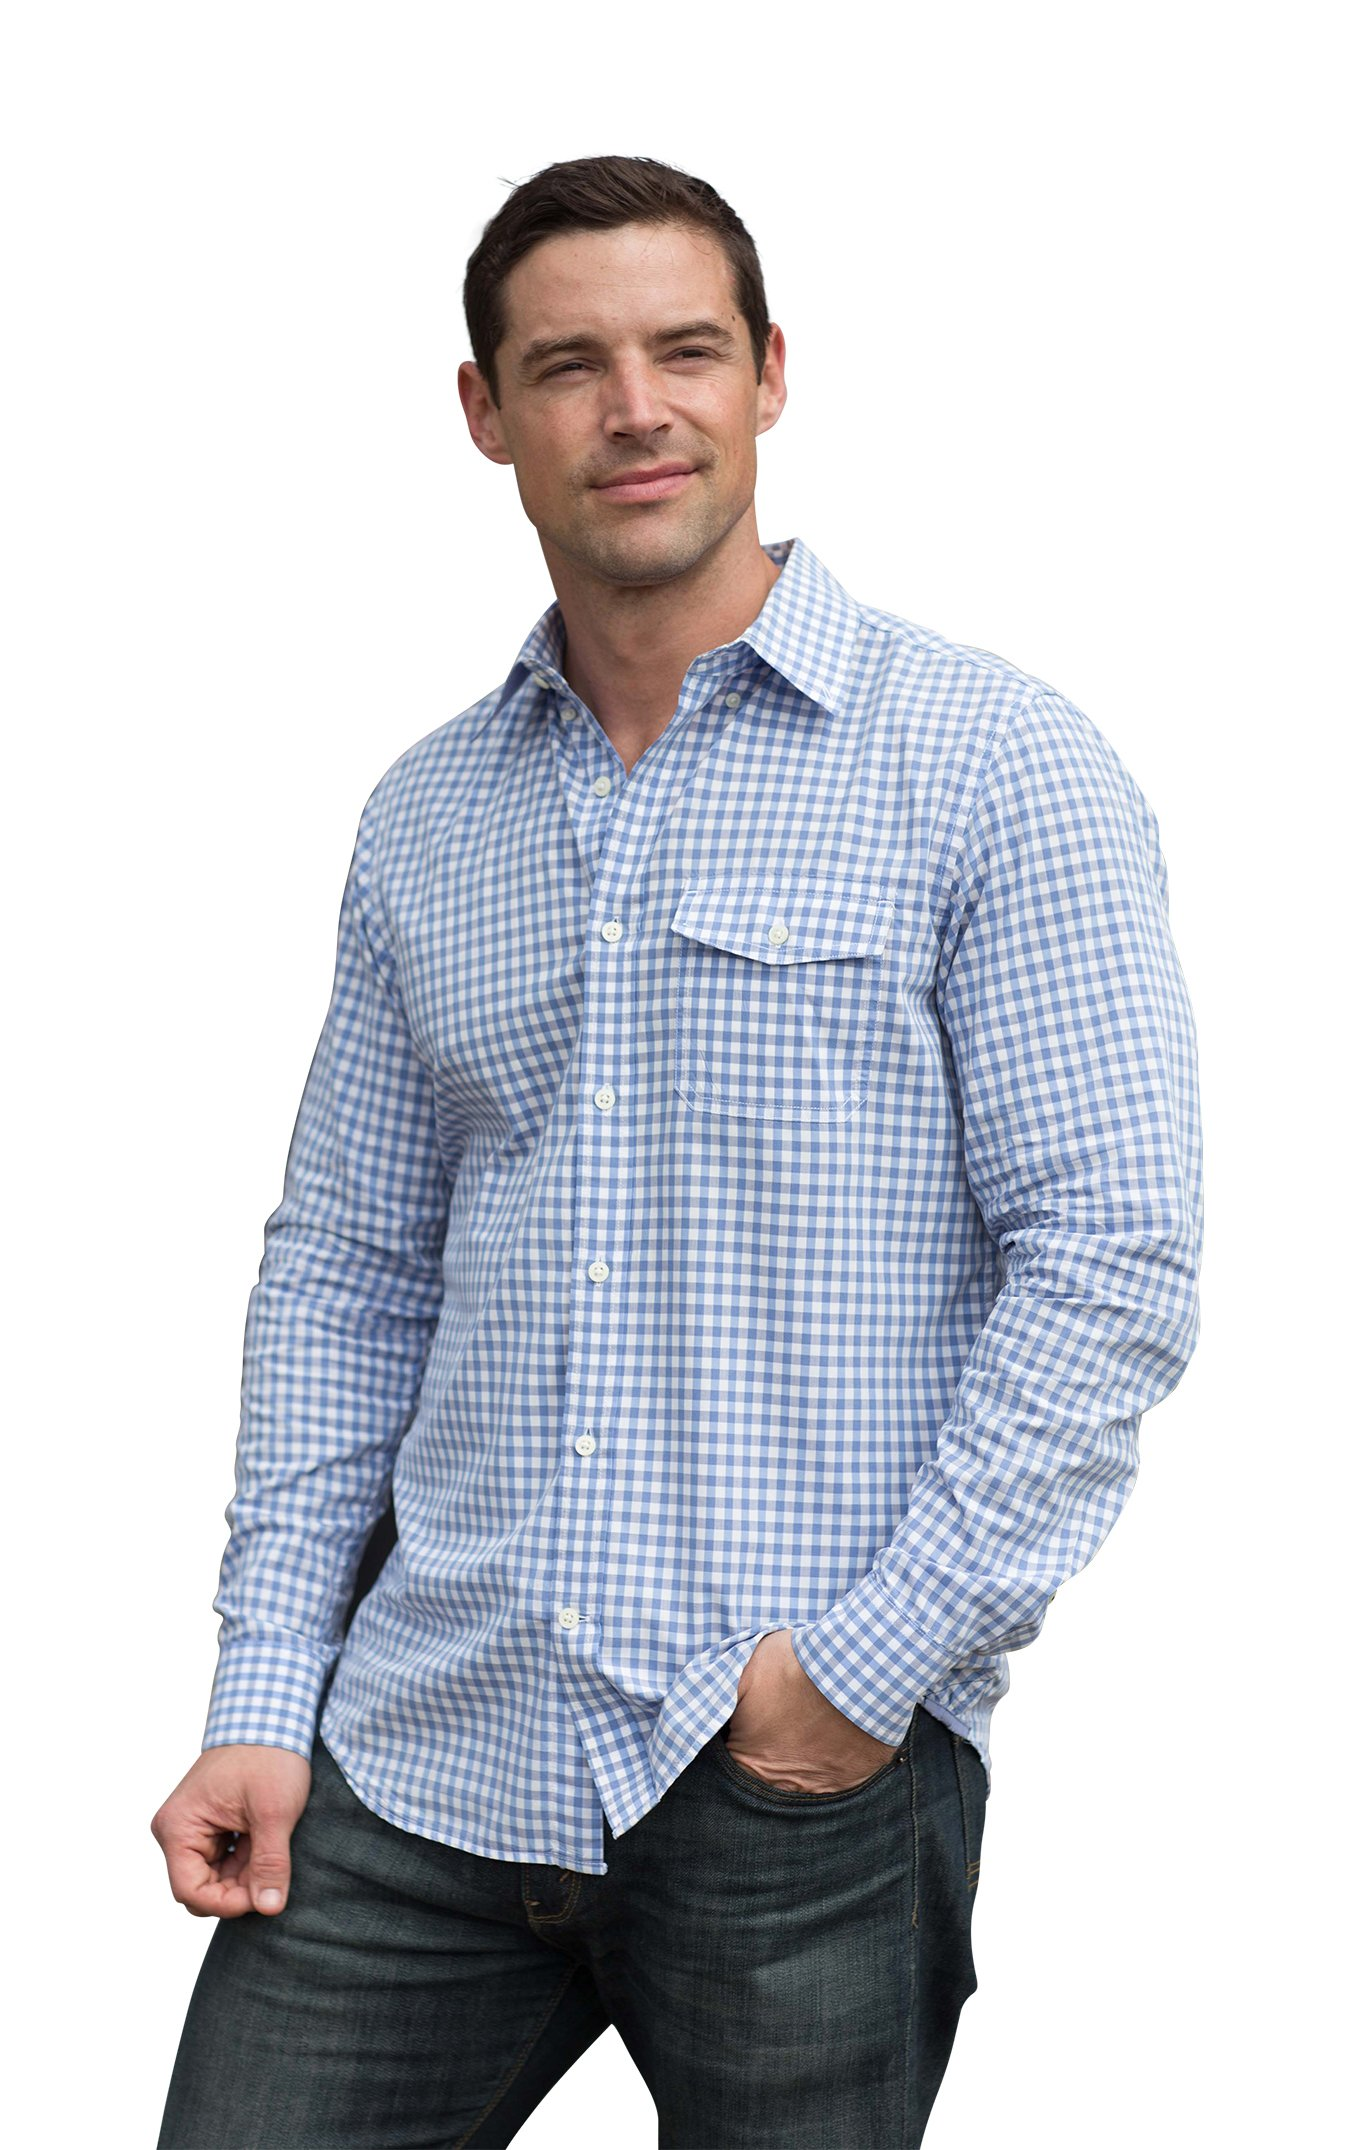 The Best Shirt Ever - Stainproof, Waterproof, Sweat-wicking Men's Button Down (Medium, Gingham Blue) by Clickbait Clothing (Image #1)